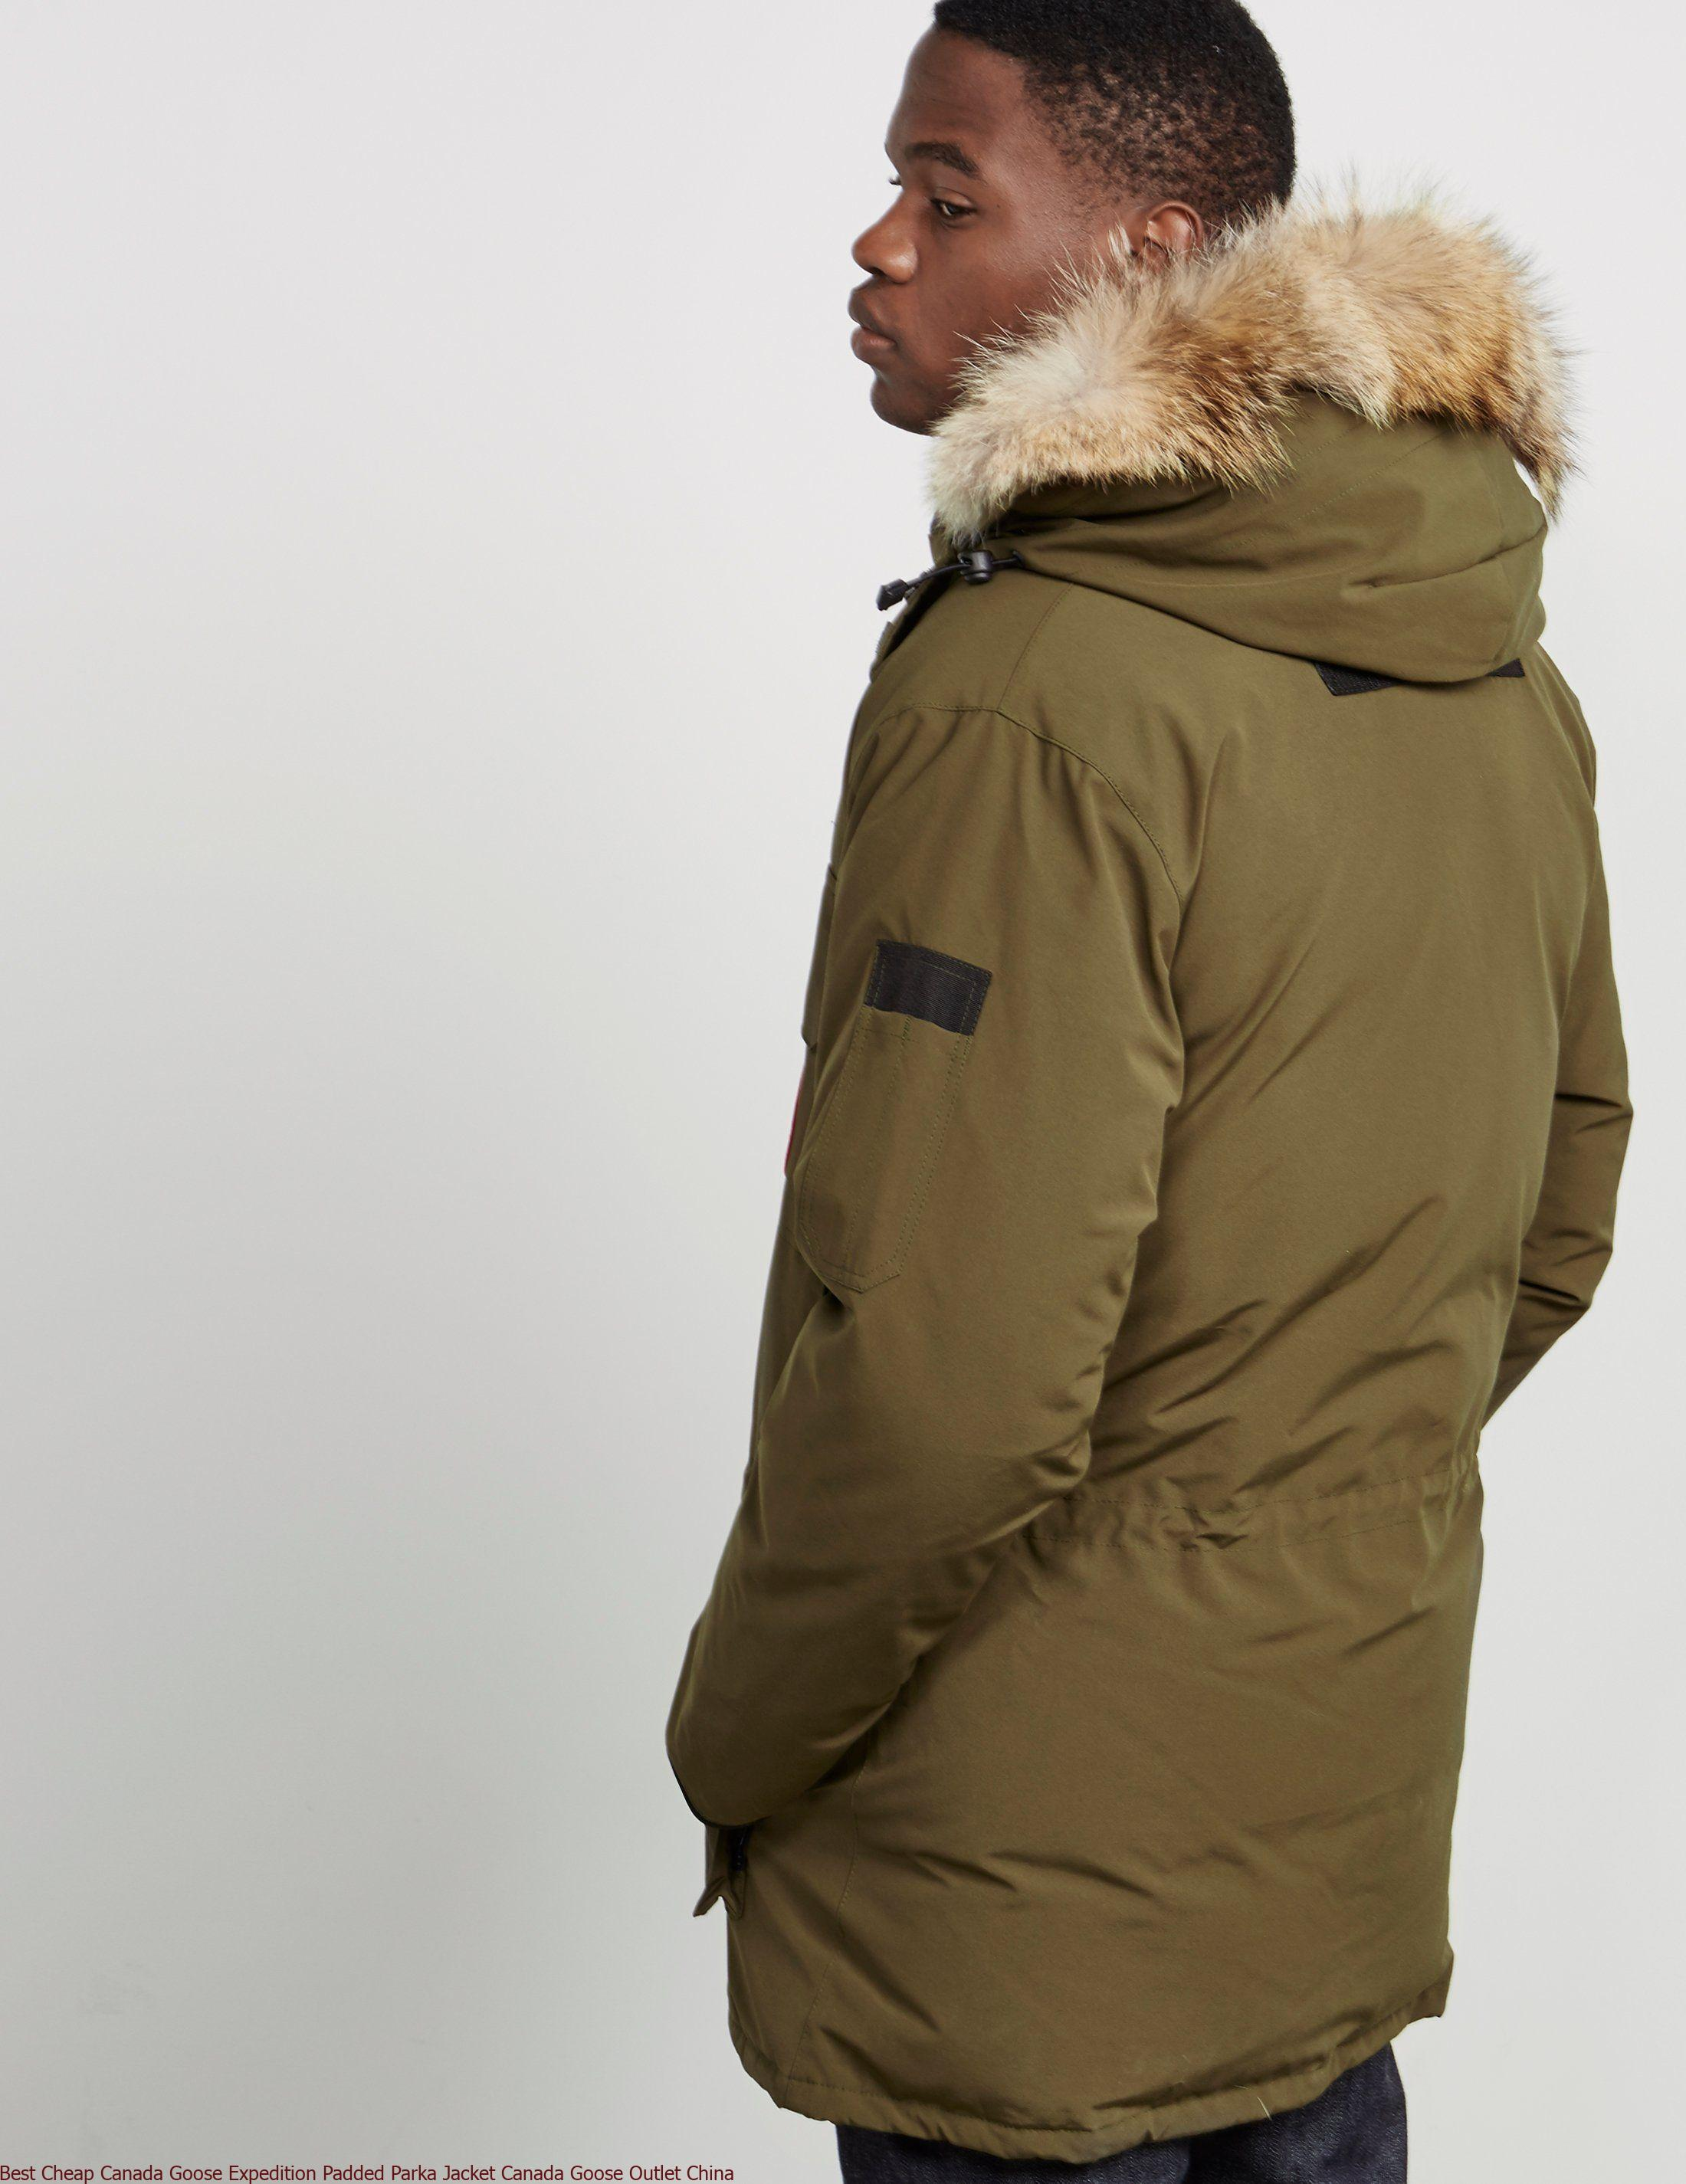 innovative design 93c7b cc8c6 Best Cheap Canada Goose Expedition Padded Parka Jacket Canada Goose Outlet  China